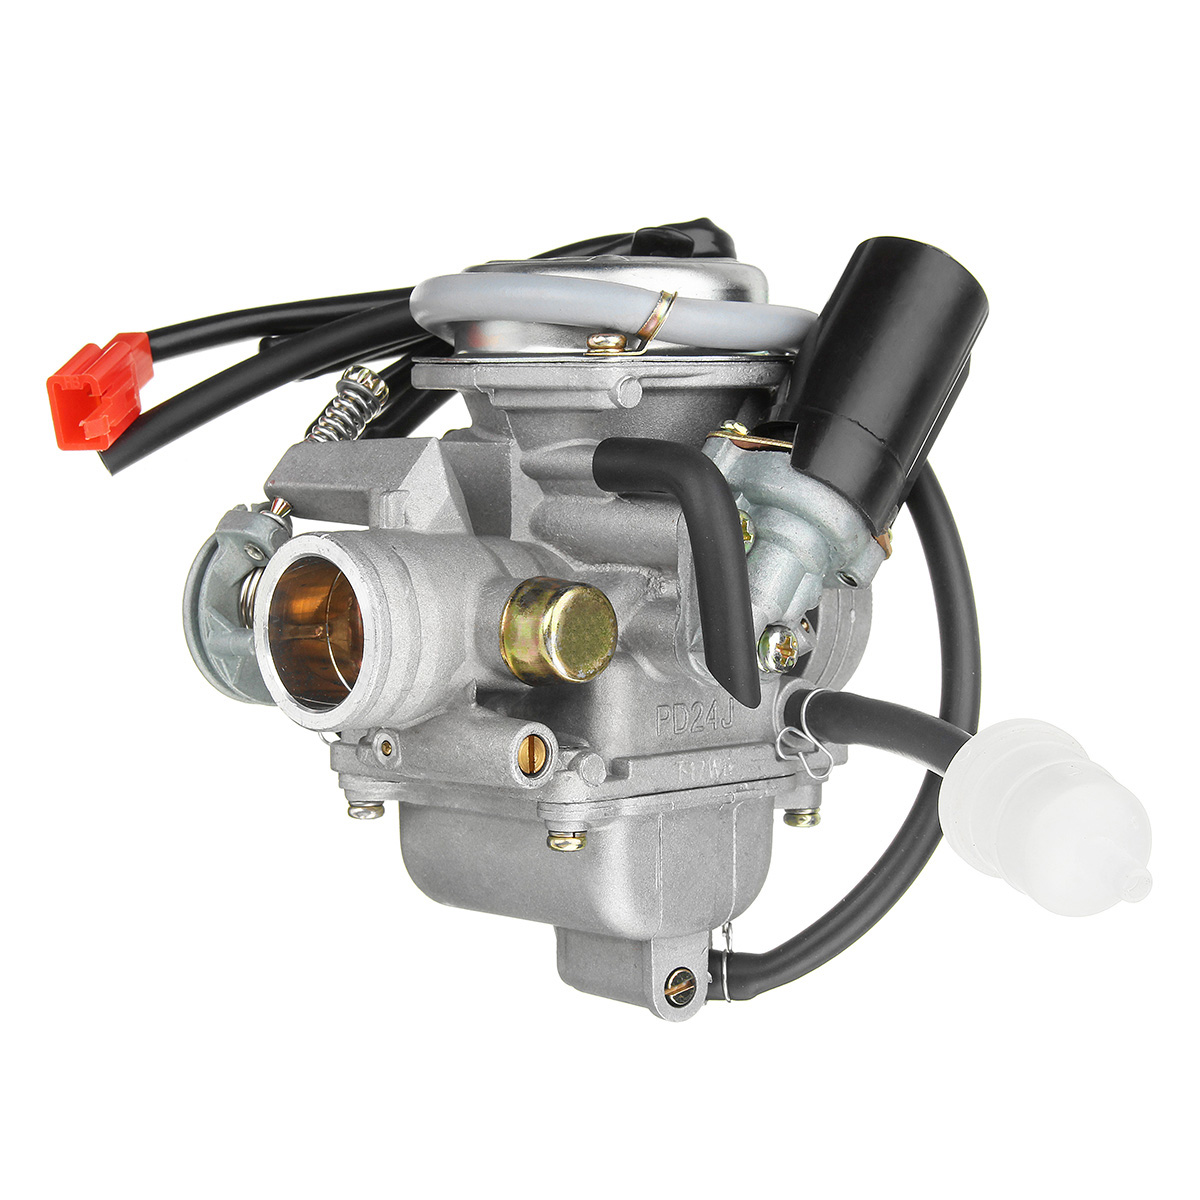 New 50cc Scooter Moped Gy6 Carburetor Carb Sunl Roketa Manual Guide